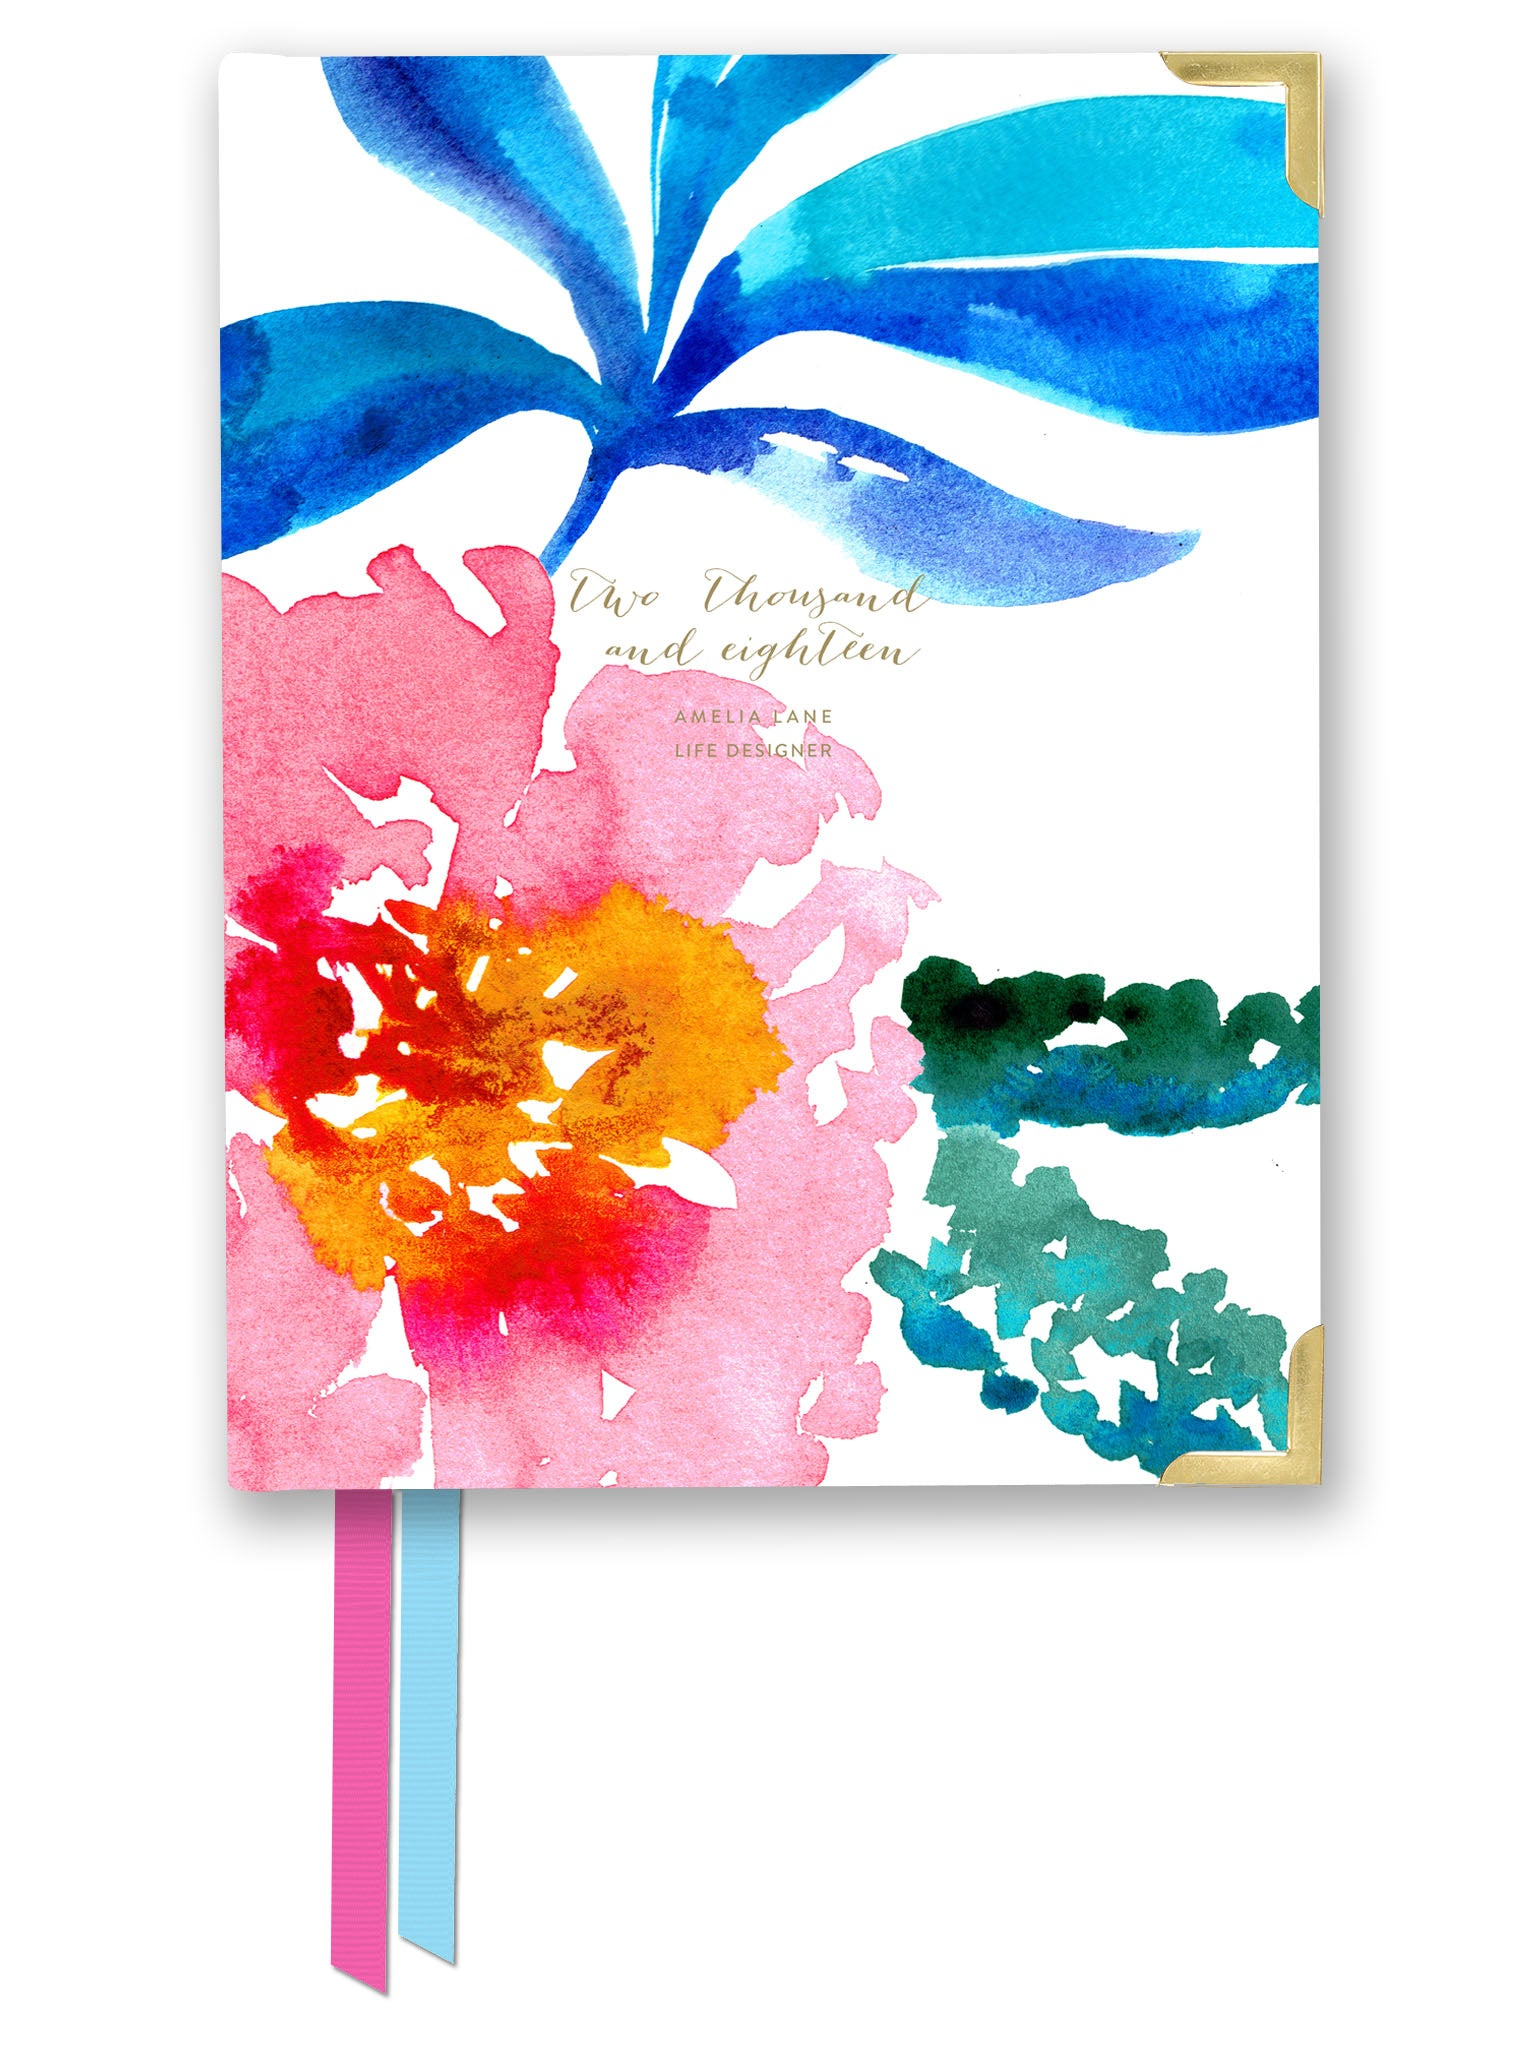 2018 Amelia Lane Life Designer, Compact Weekly (Spring Floral)